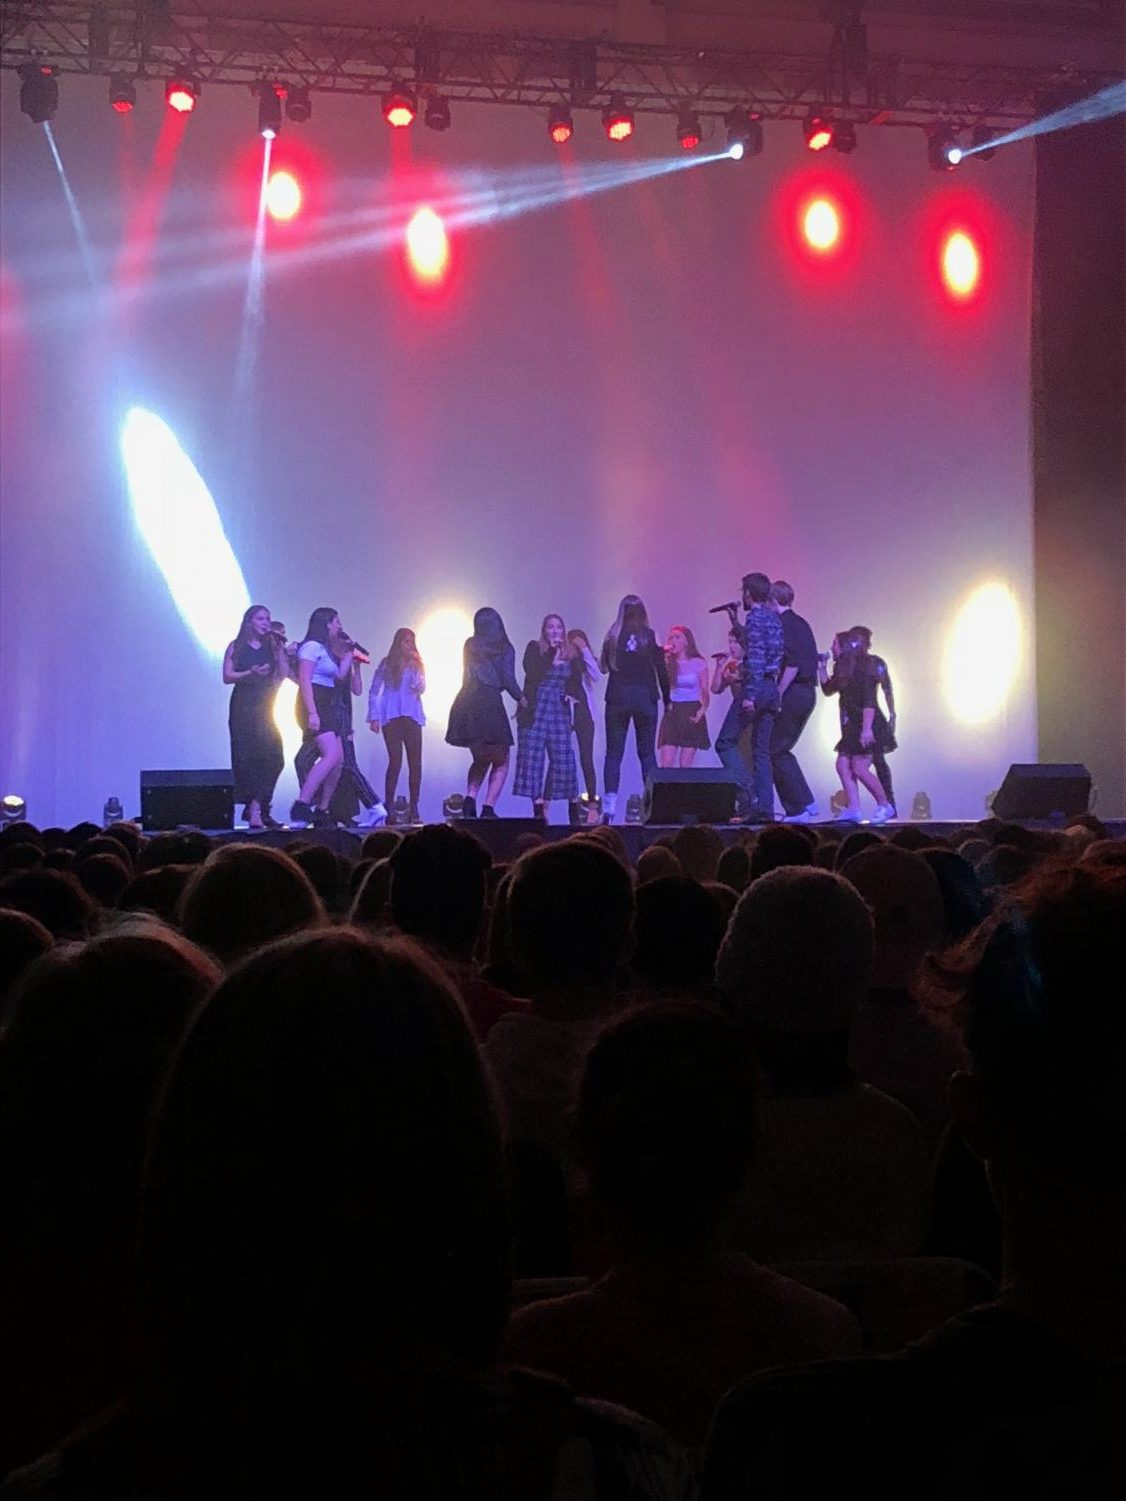 A cappella group performance